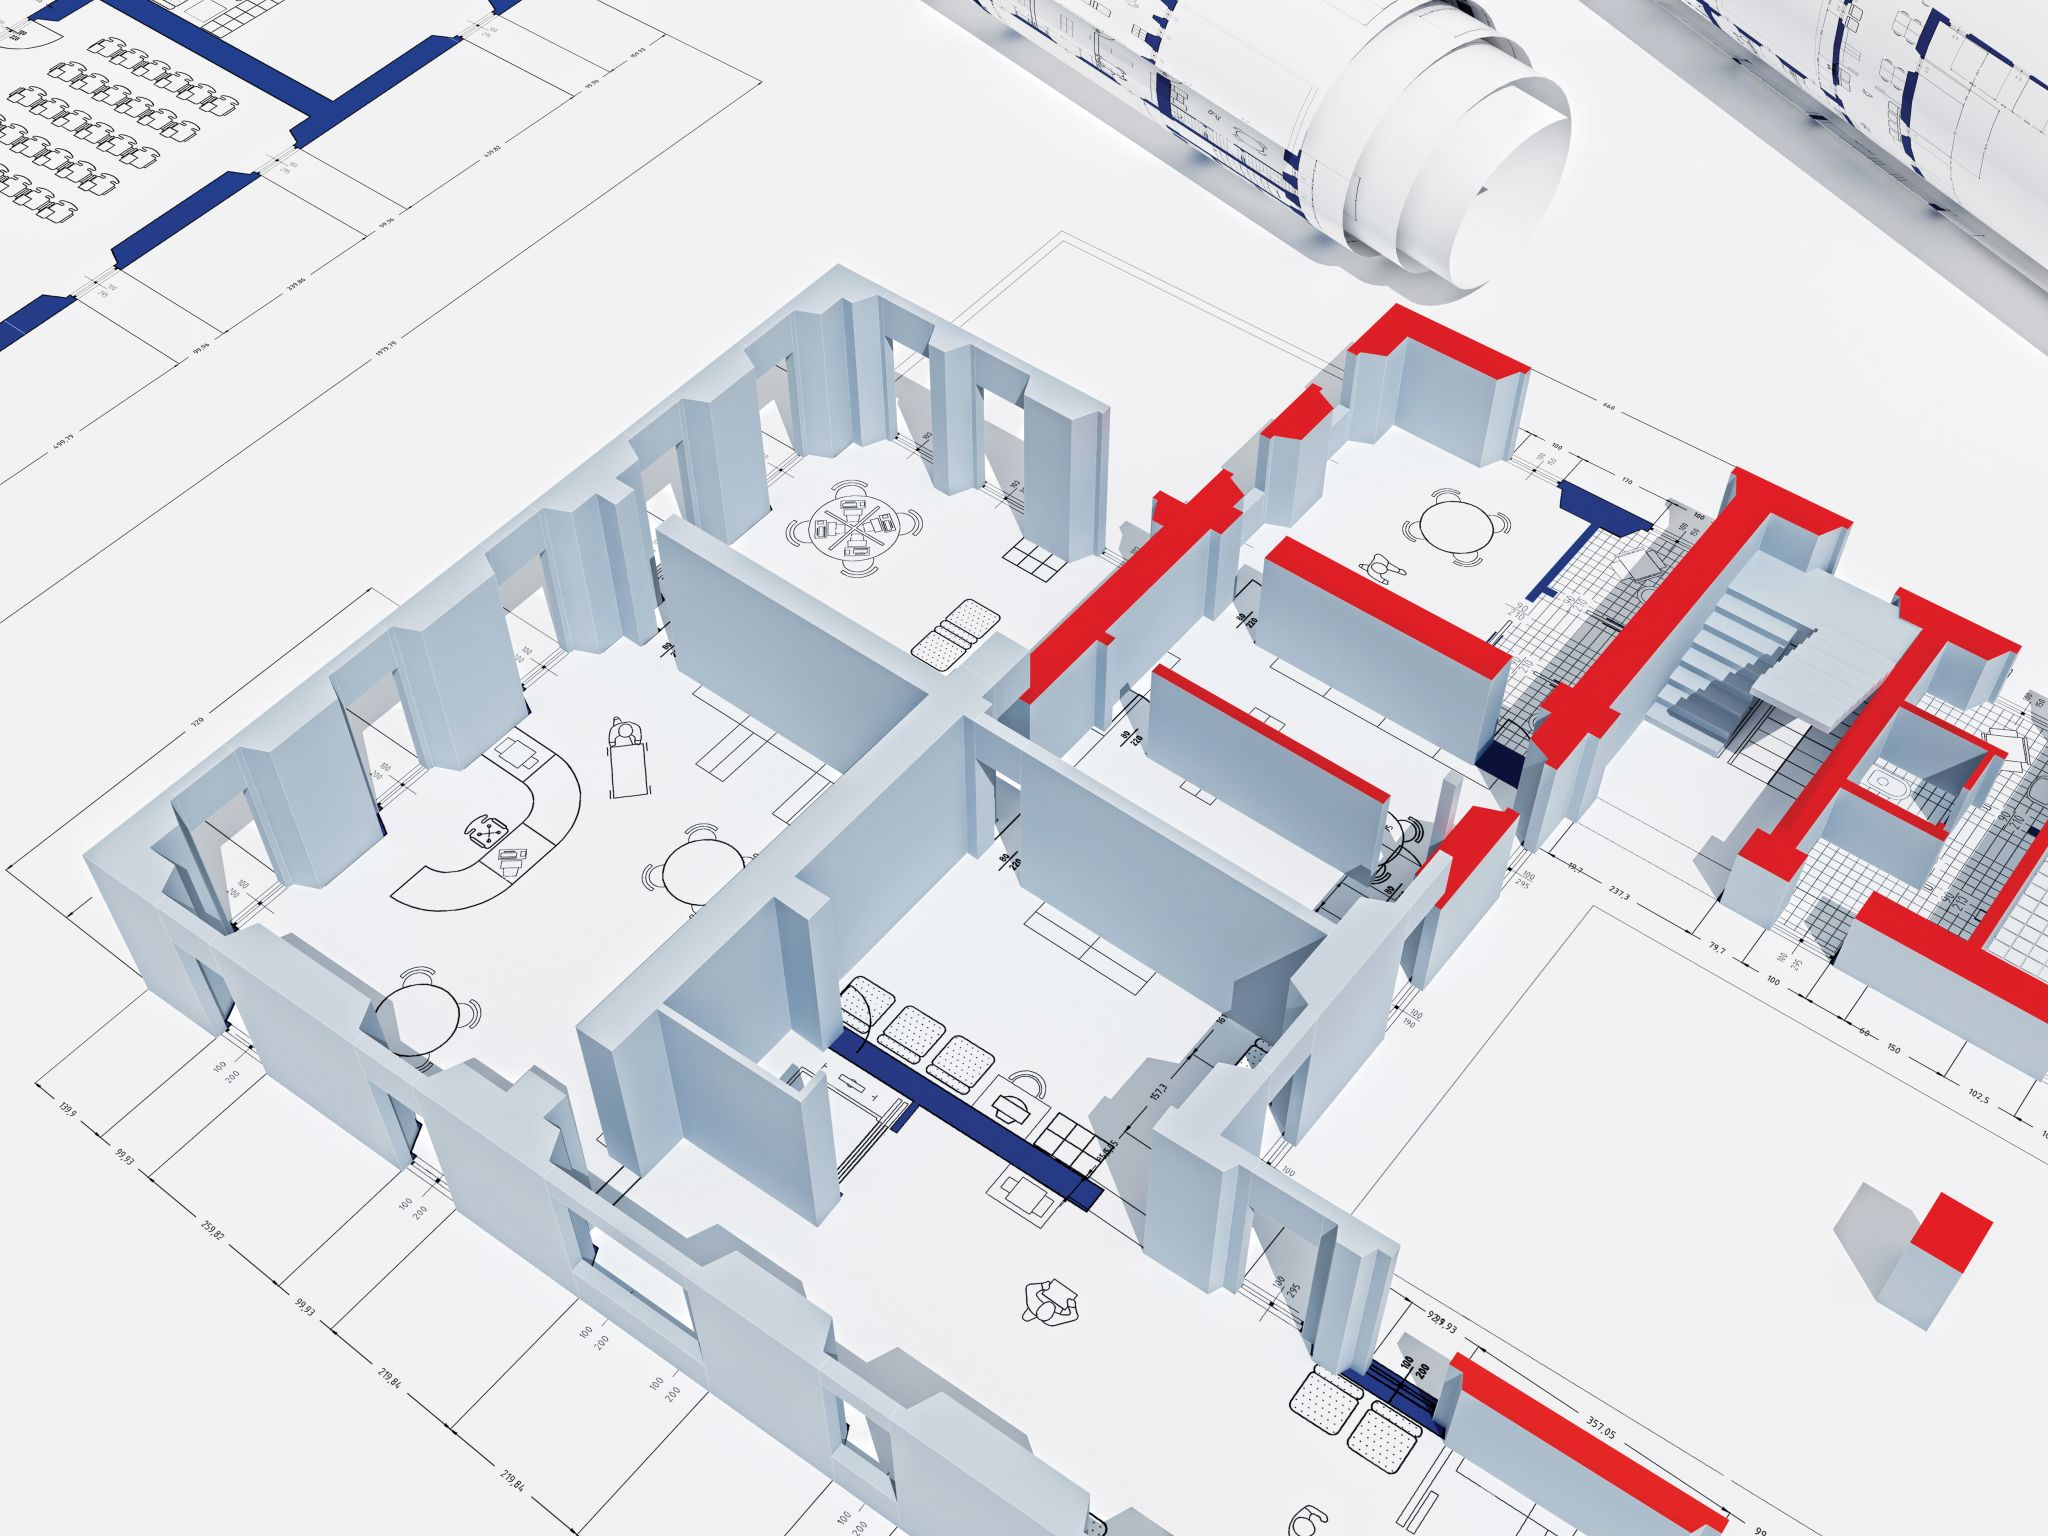 bim pxp knowing the execution plan essentials sub panel requirements